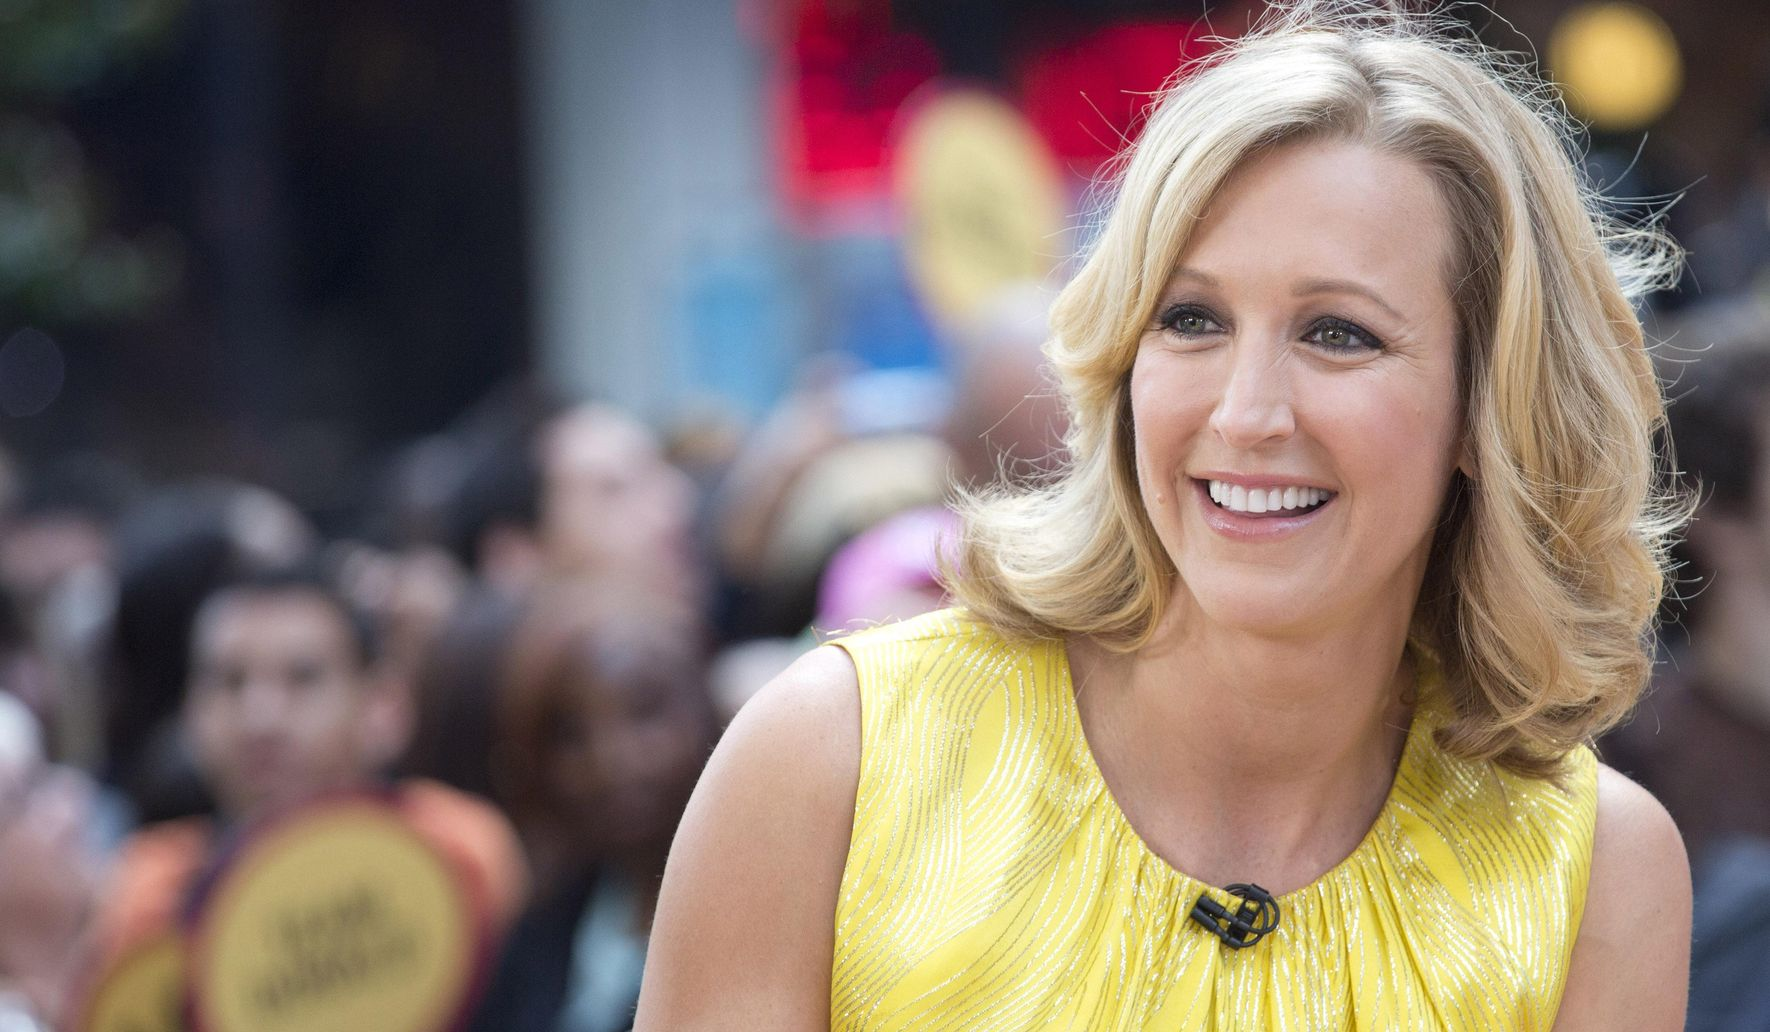 'GMA host' Lara Spencer apologizes for laughing about Prince George taking ballet